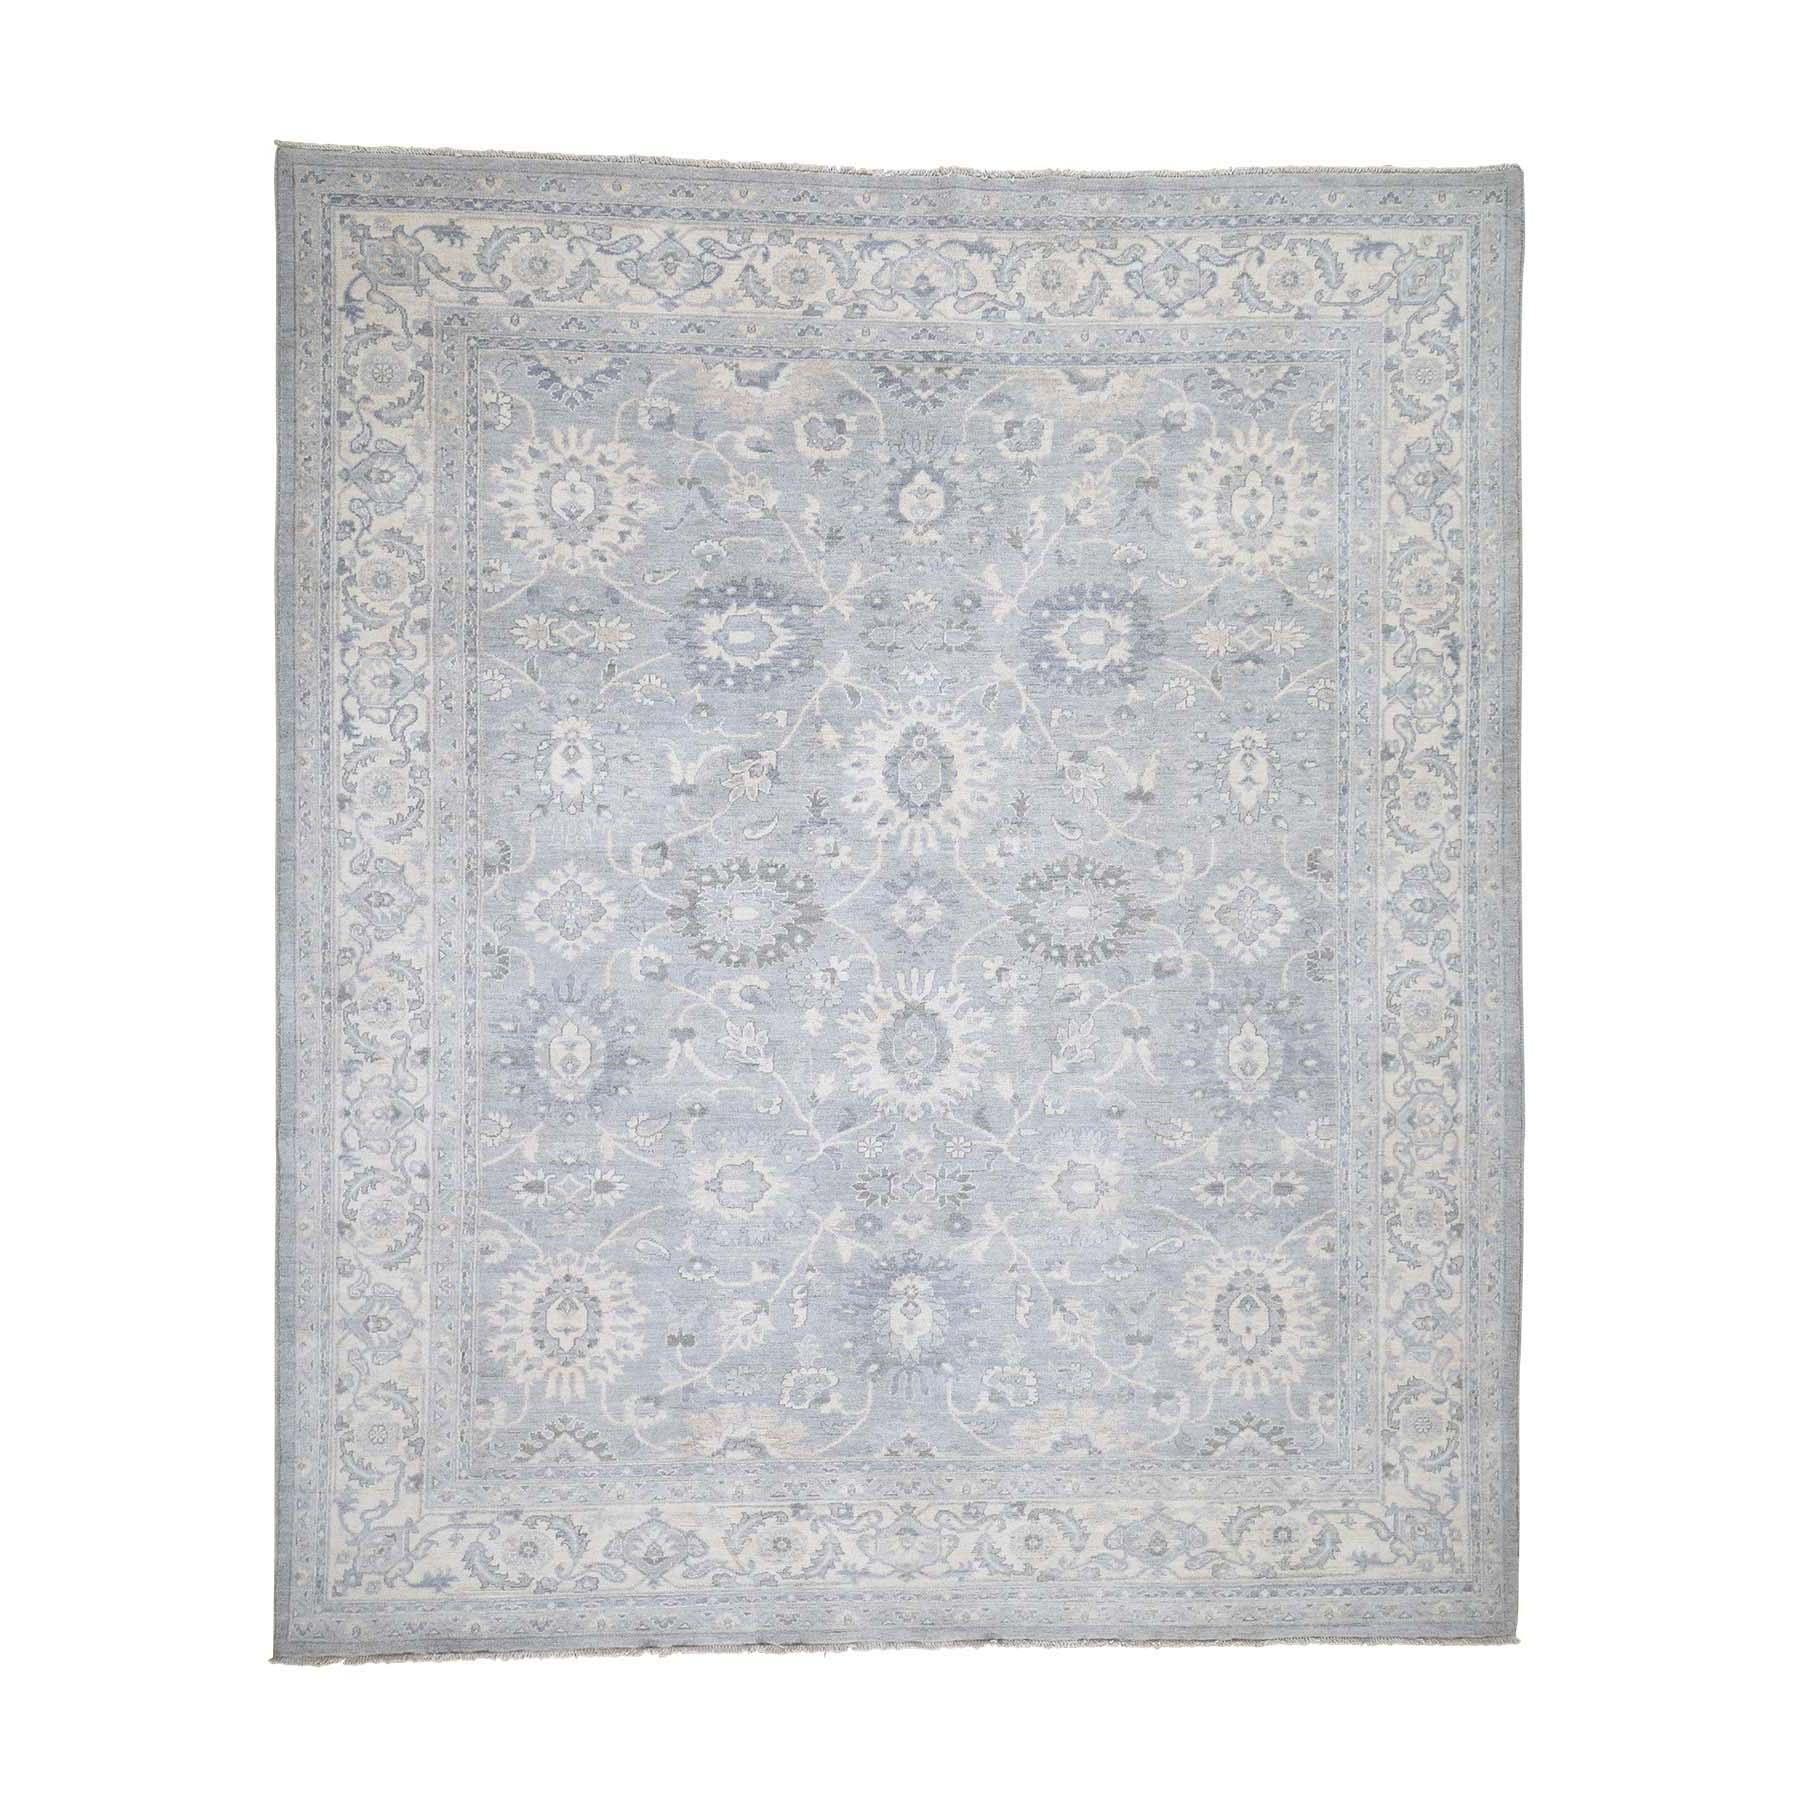 "8'4""X9'10"" Silver Wash Peshawar With Mahal Design Hand-Knotted Oriental Rug moadcb69"